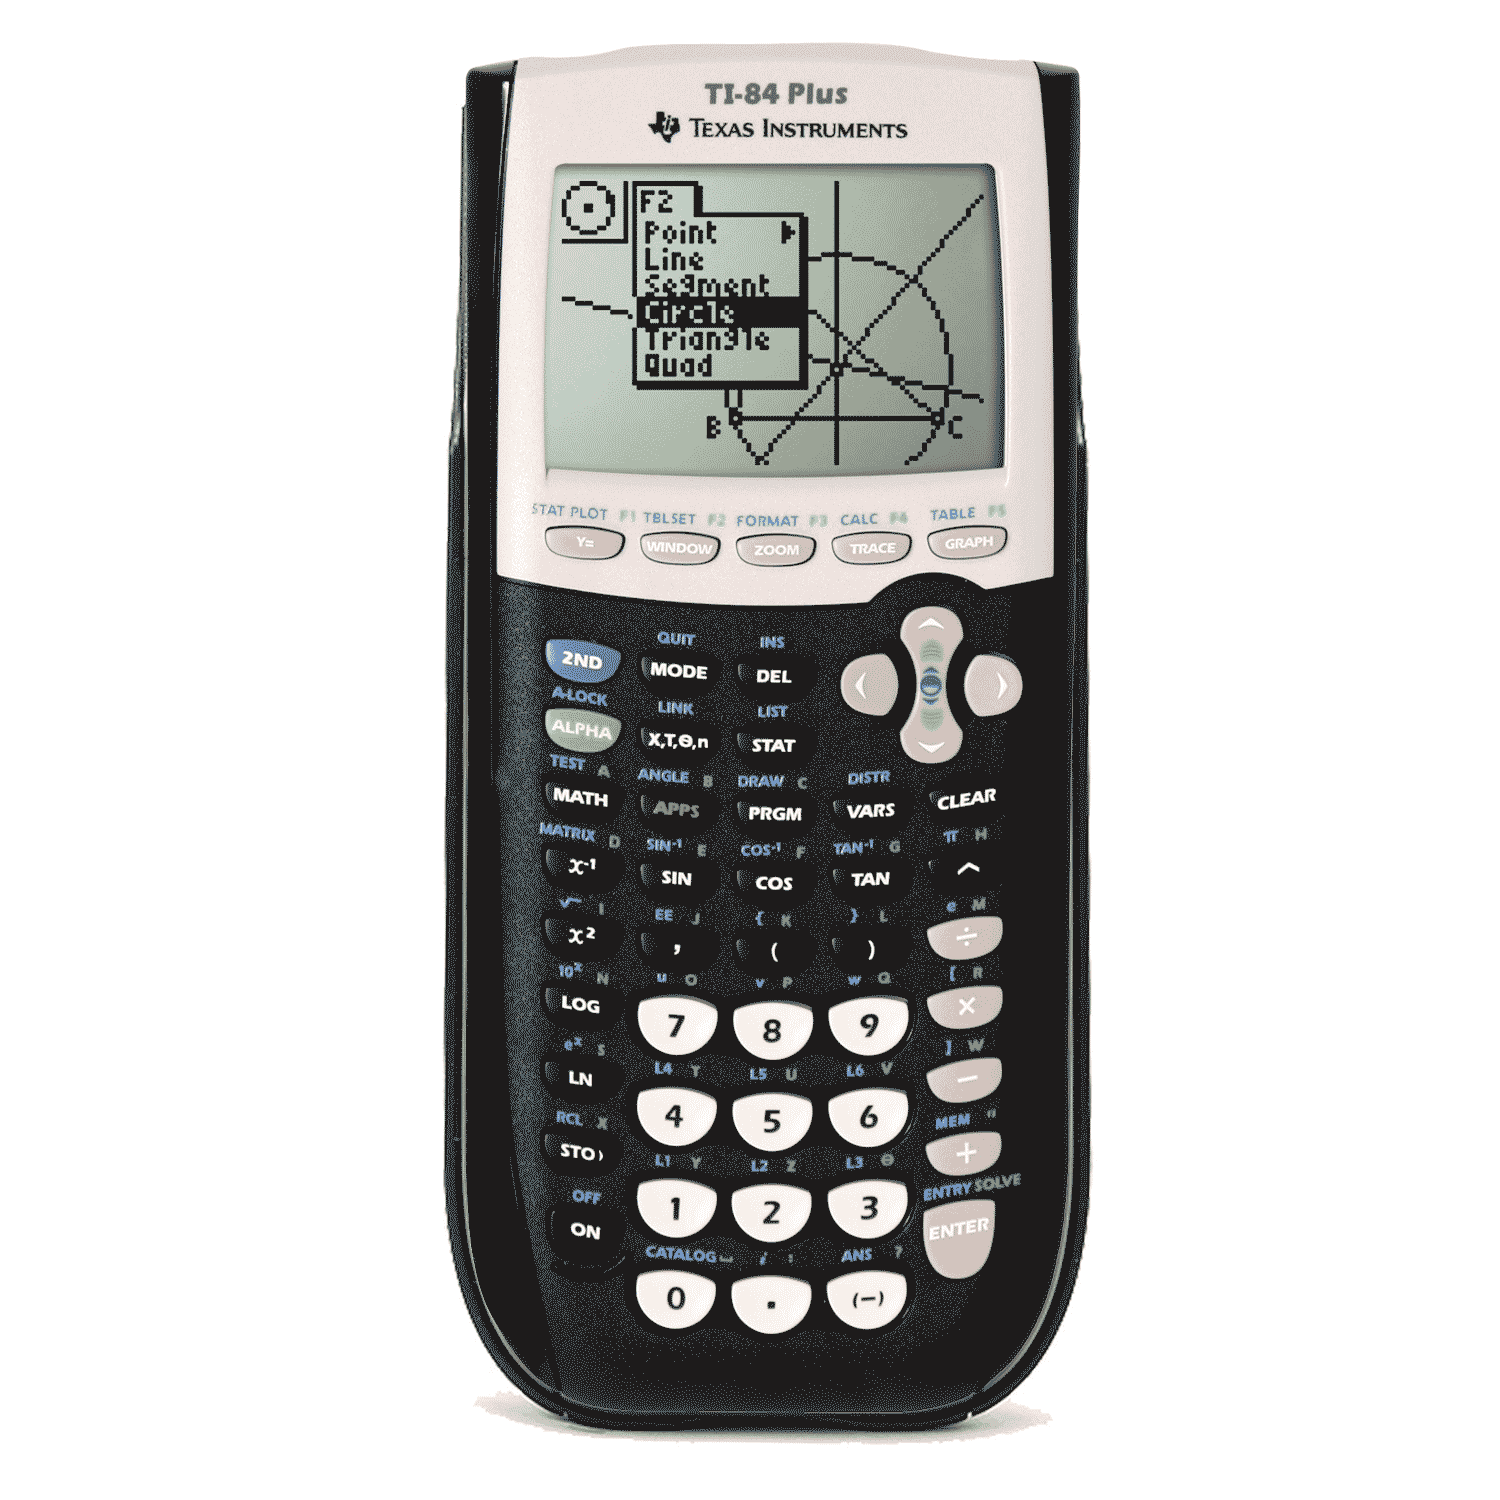 This is an image of a calculator that students will probably use in this course.